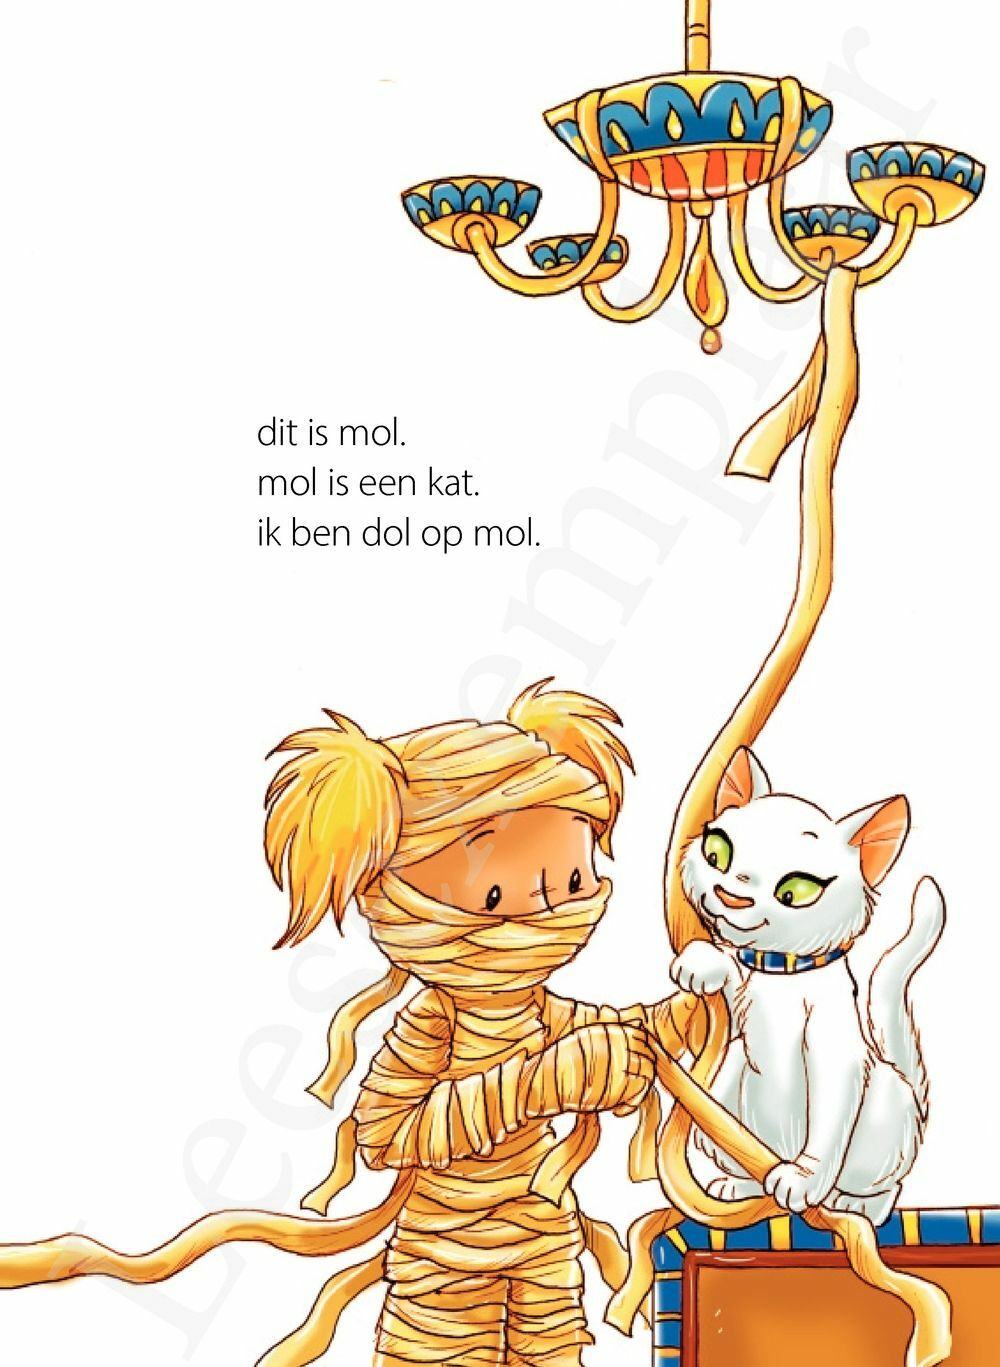 Preview: mie en mol in de boom